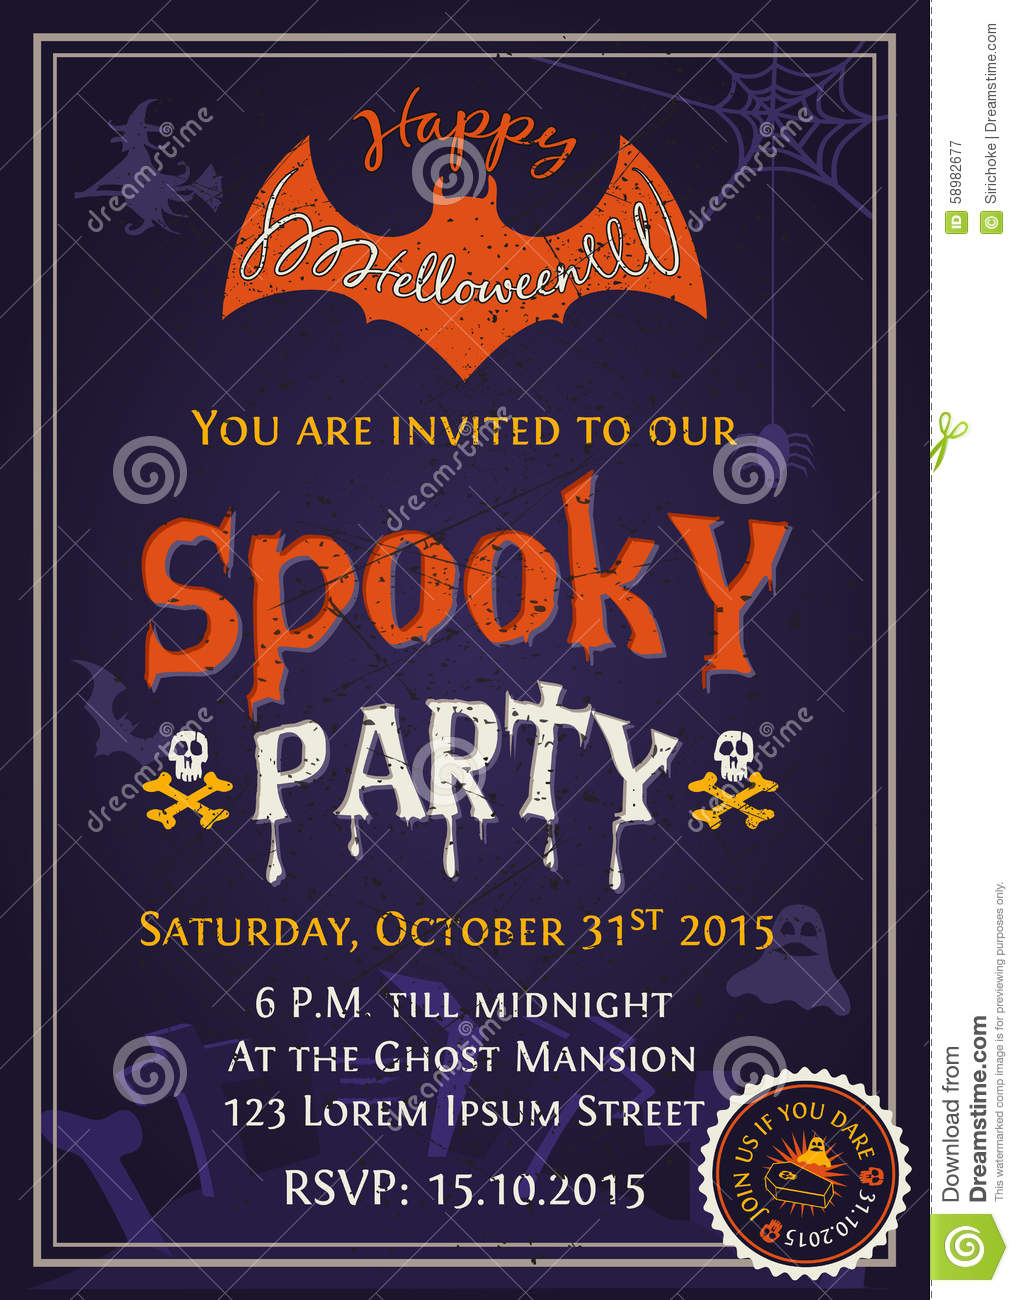 Spooky Halloween Party Invitation Card Design Vector Image – Party Invitation Card Design